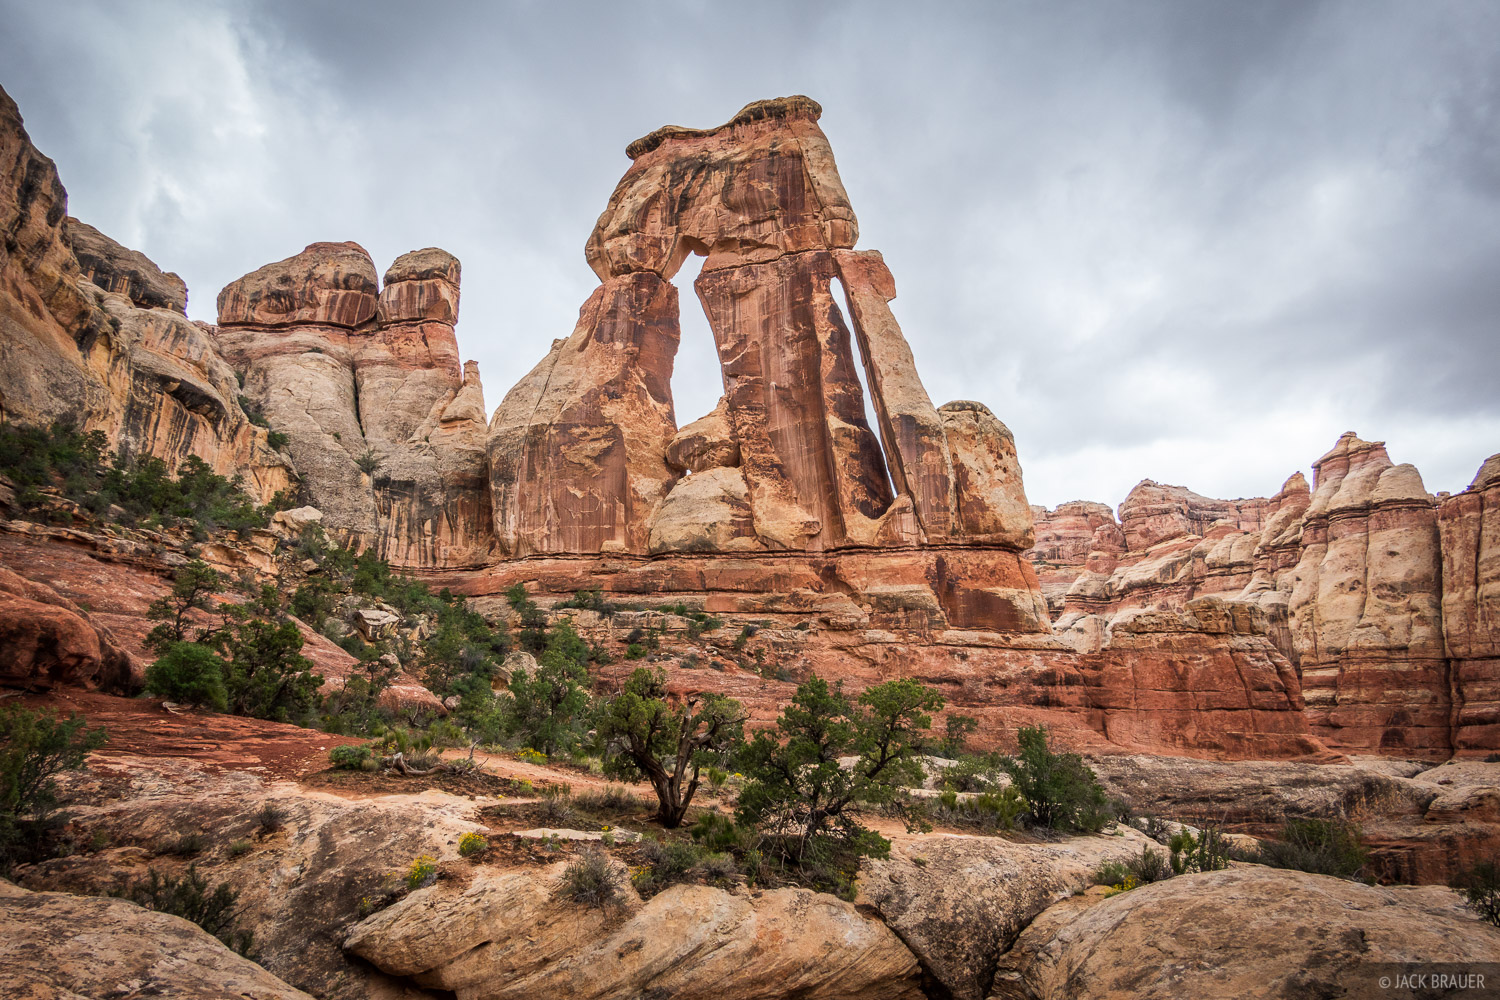 Canyonlands National Park, Druid Arch, Needles District, Utah, photo